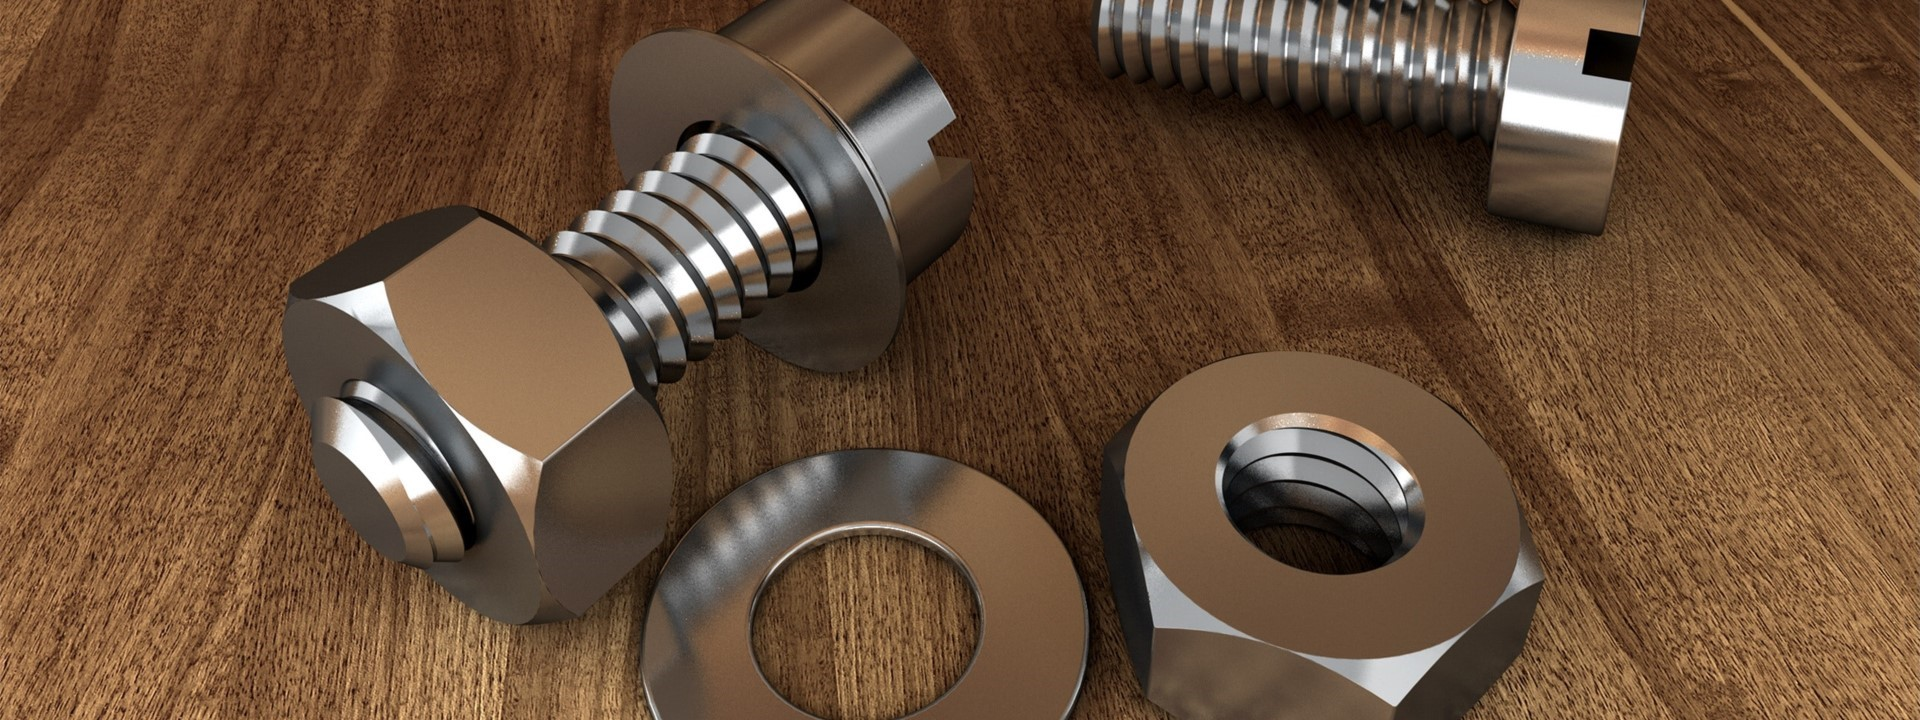 Nuts And Bolts That Were Shaped Using Metal Forming